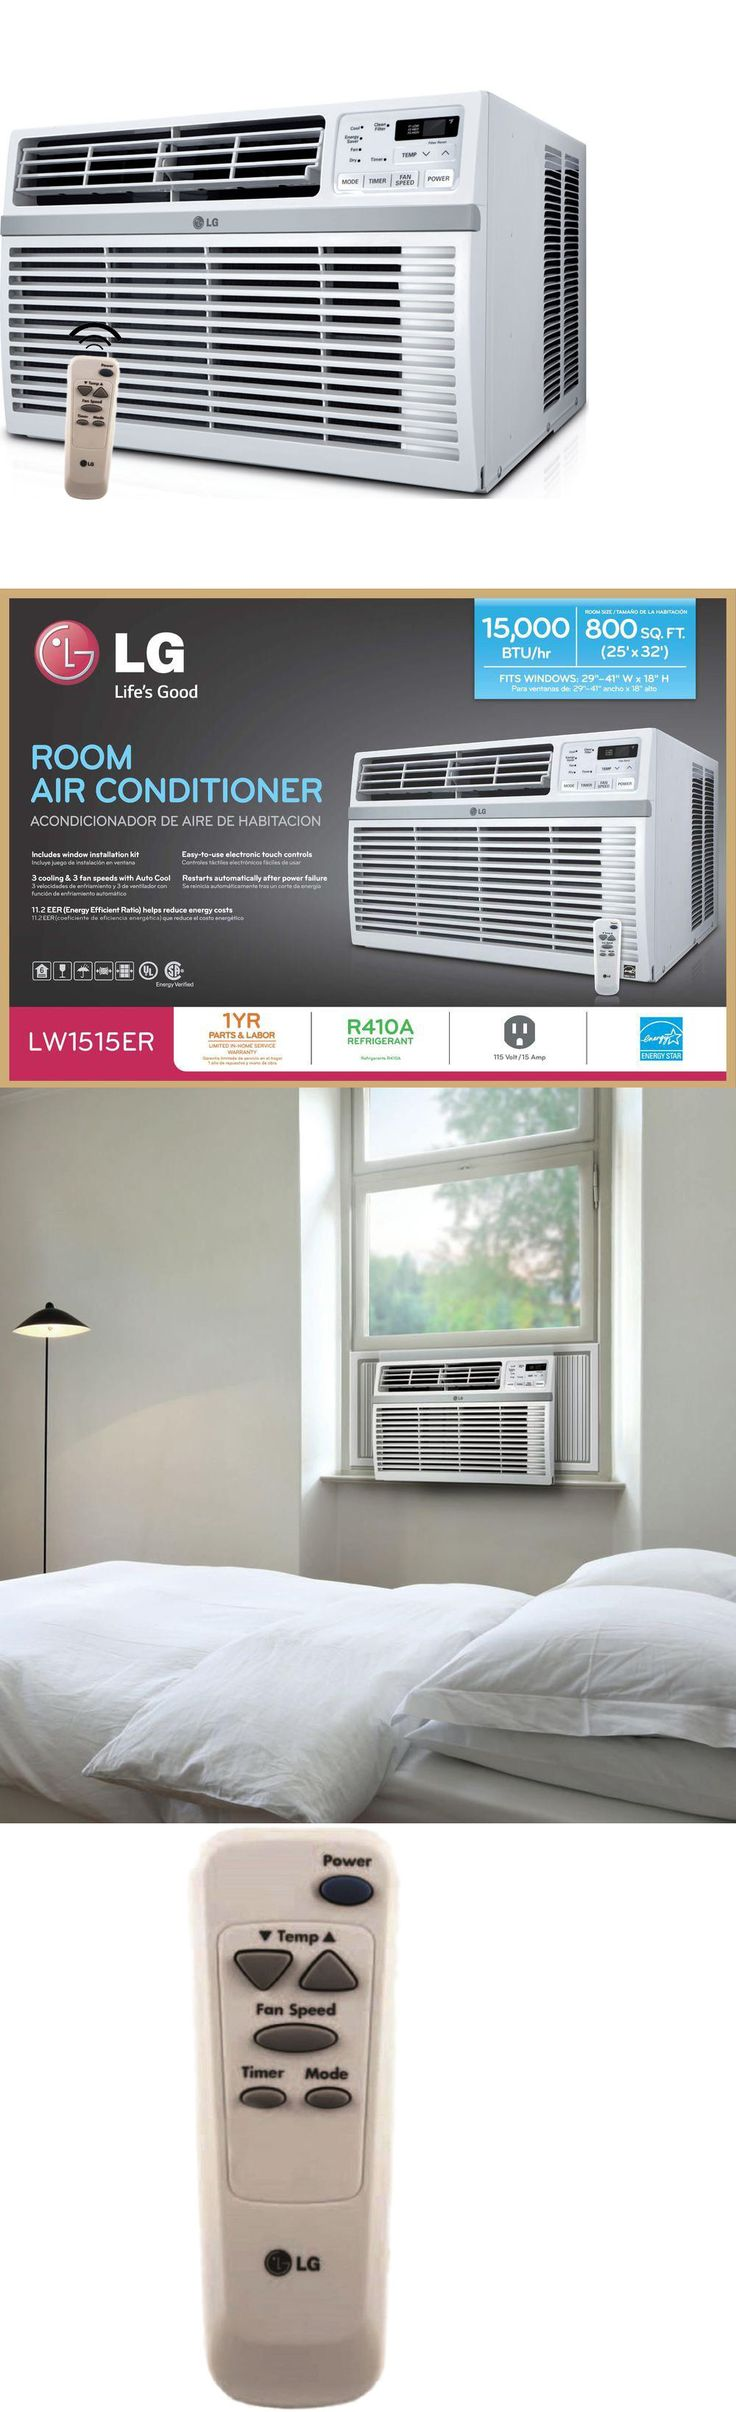 Air Conditioners 69202: Lg 15000 Btu Energy Star Window Air Conditioning, 115V Ac Unit W Remote Control -> BUY IT NOW ONLY: $439.95 on eBay!